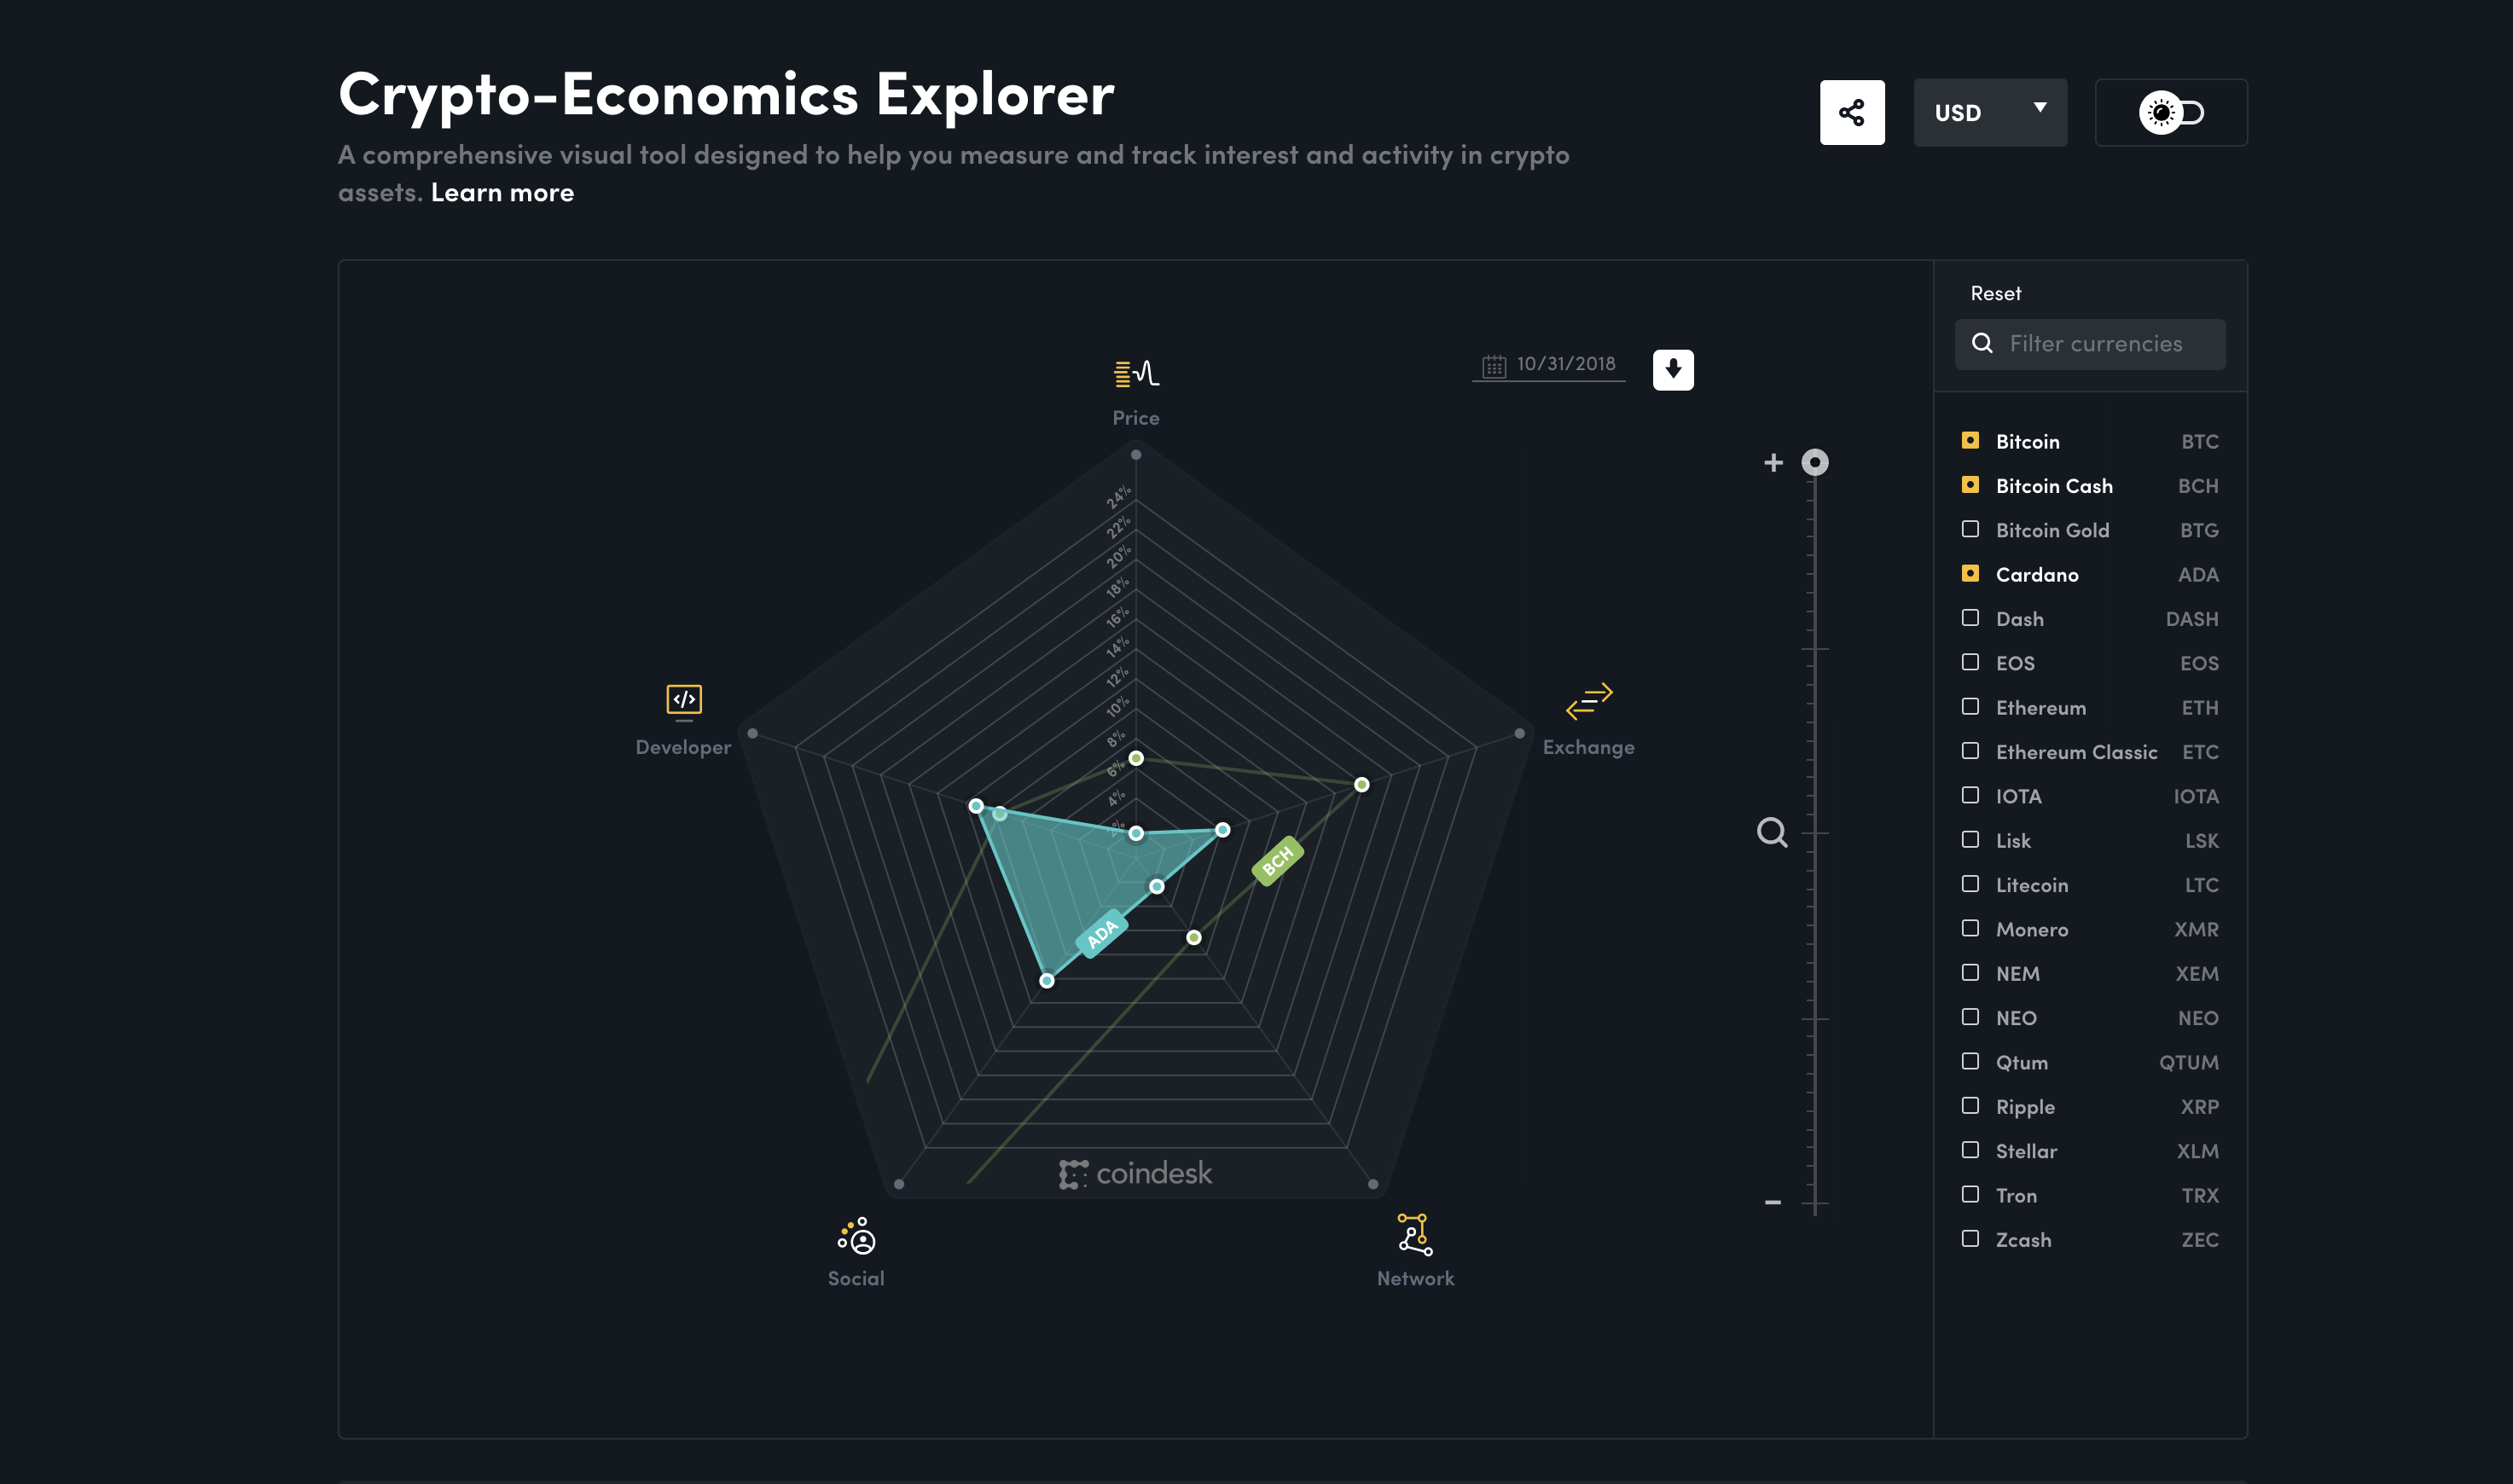 1542252045 417 coindesk launches the crypto economics explorer a new way to visualize crypto - CoinDesk Launches the Crypto-Economics Explorer, A New Way to Visualize Crypto